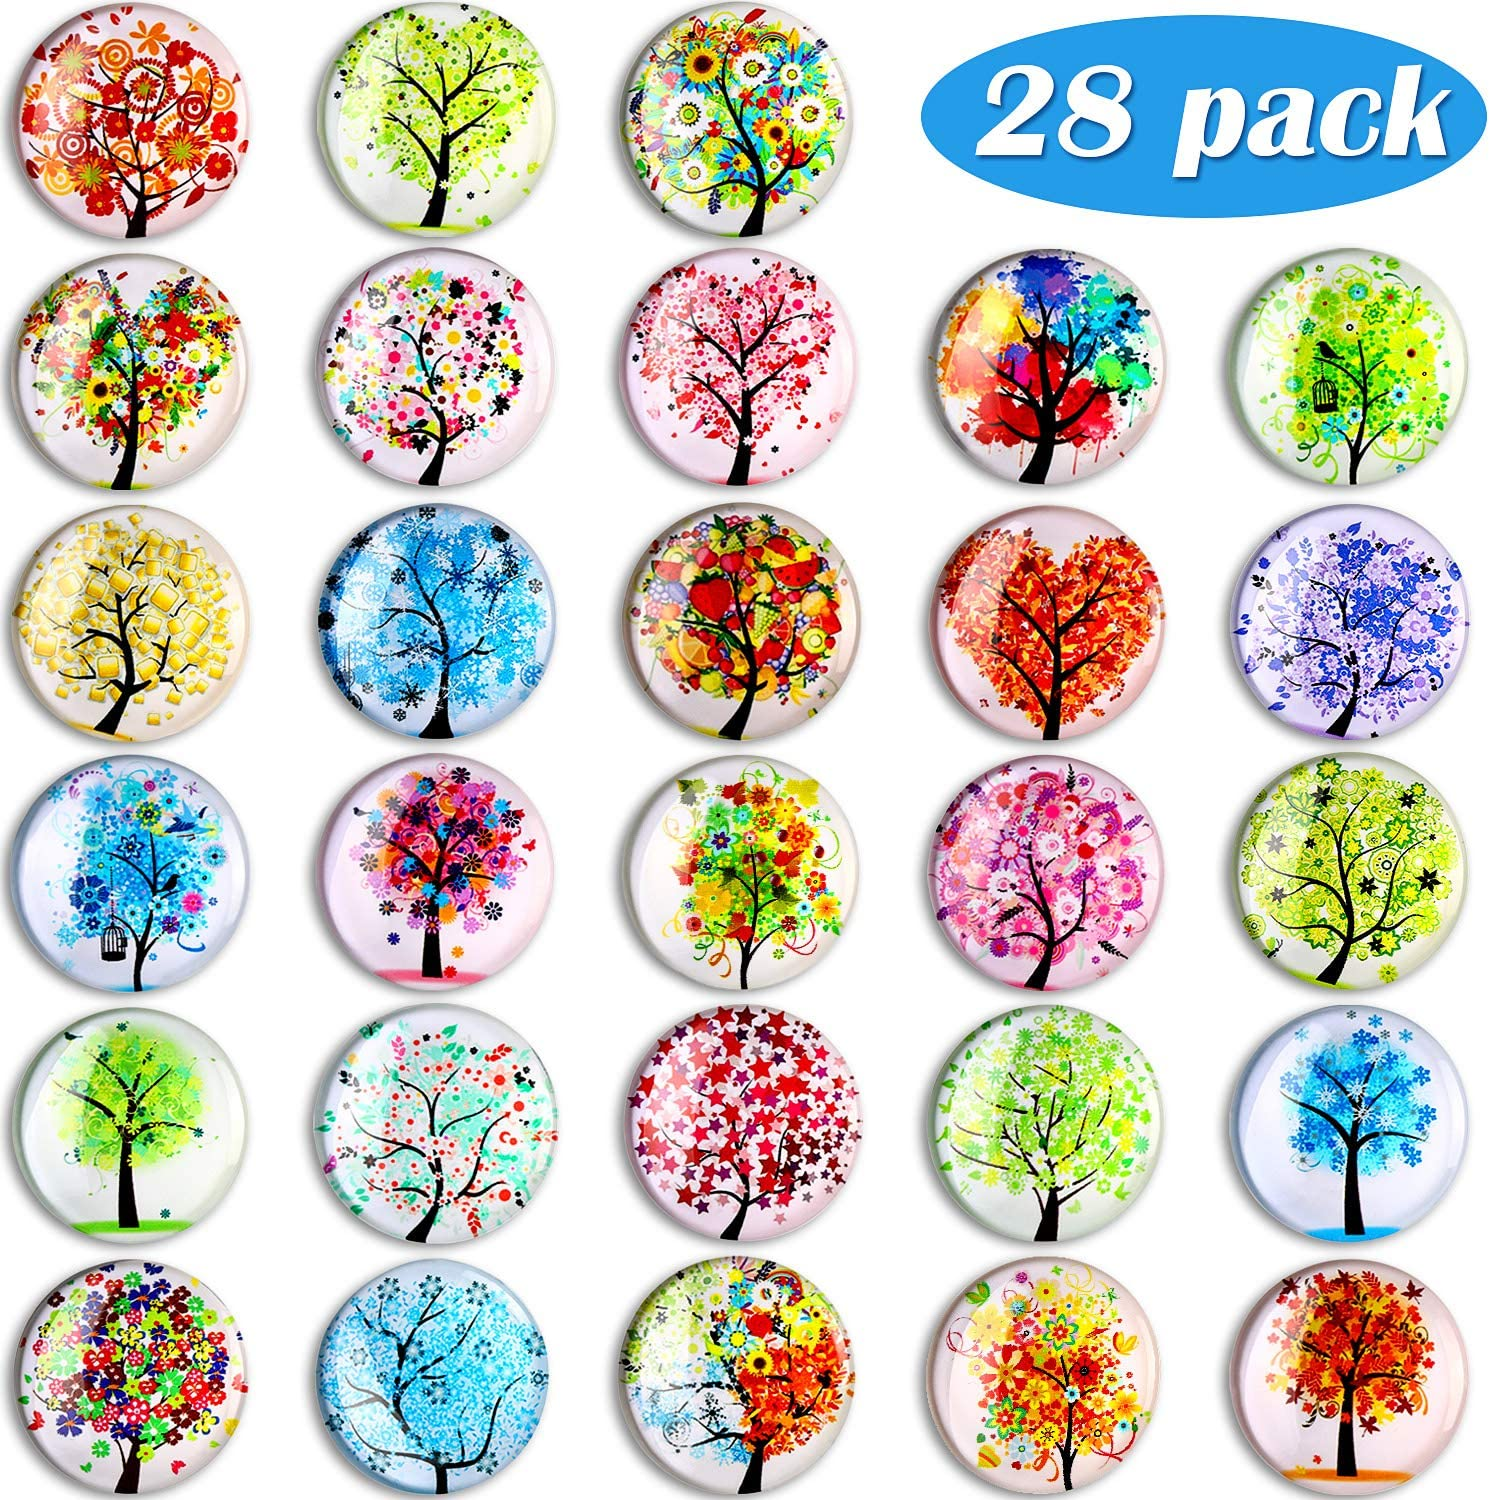 28 Pieces Tree of Life Refrigerator Magnets Glass Refrigerator Fridge Magnets for Office Home Classroom Whiteboard Locker Fridge Decorative Supplies